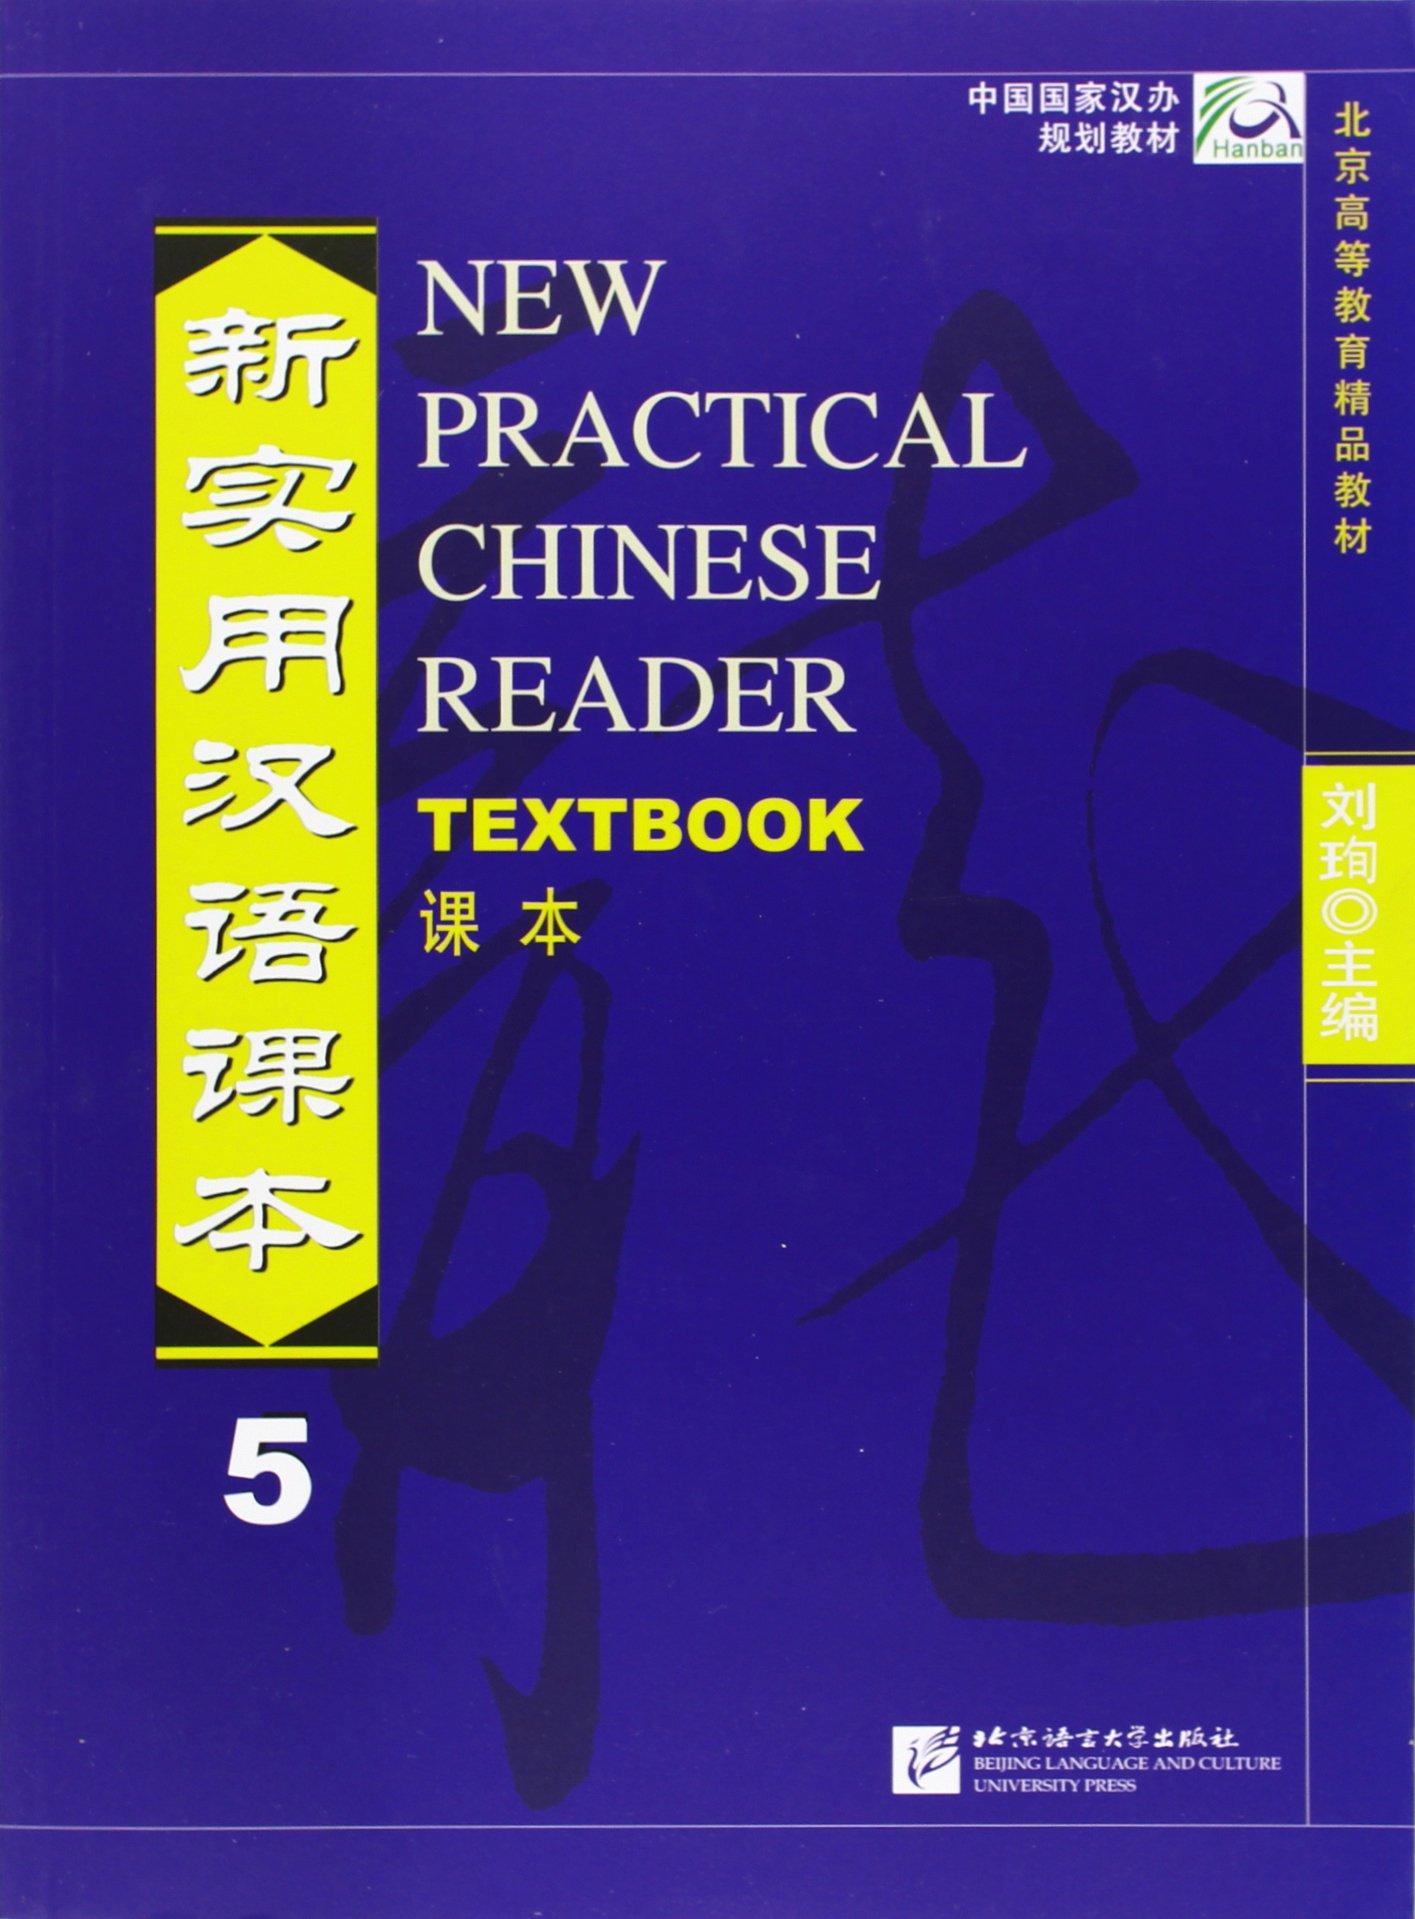 New practical chinese reader textbook 5 v 5 chinese edition new practical chinese reader textbook 5 v 5 chinese edition liu xun 9787561914083 amazon books fandeluxe